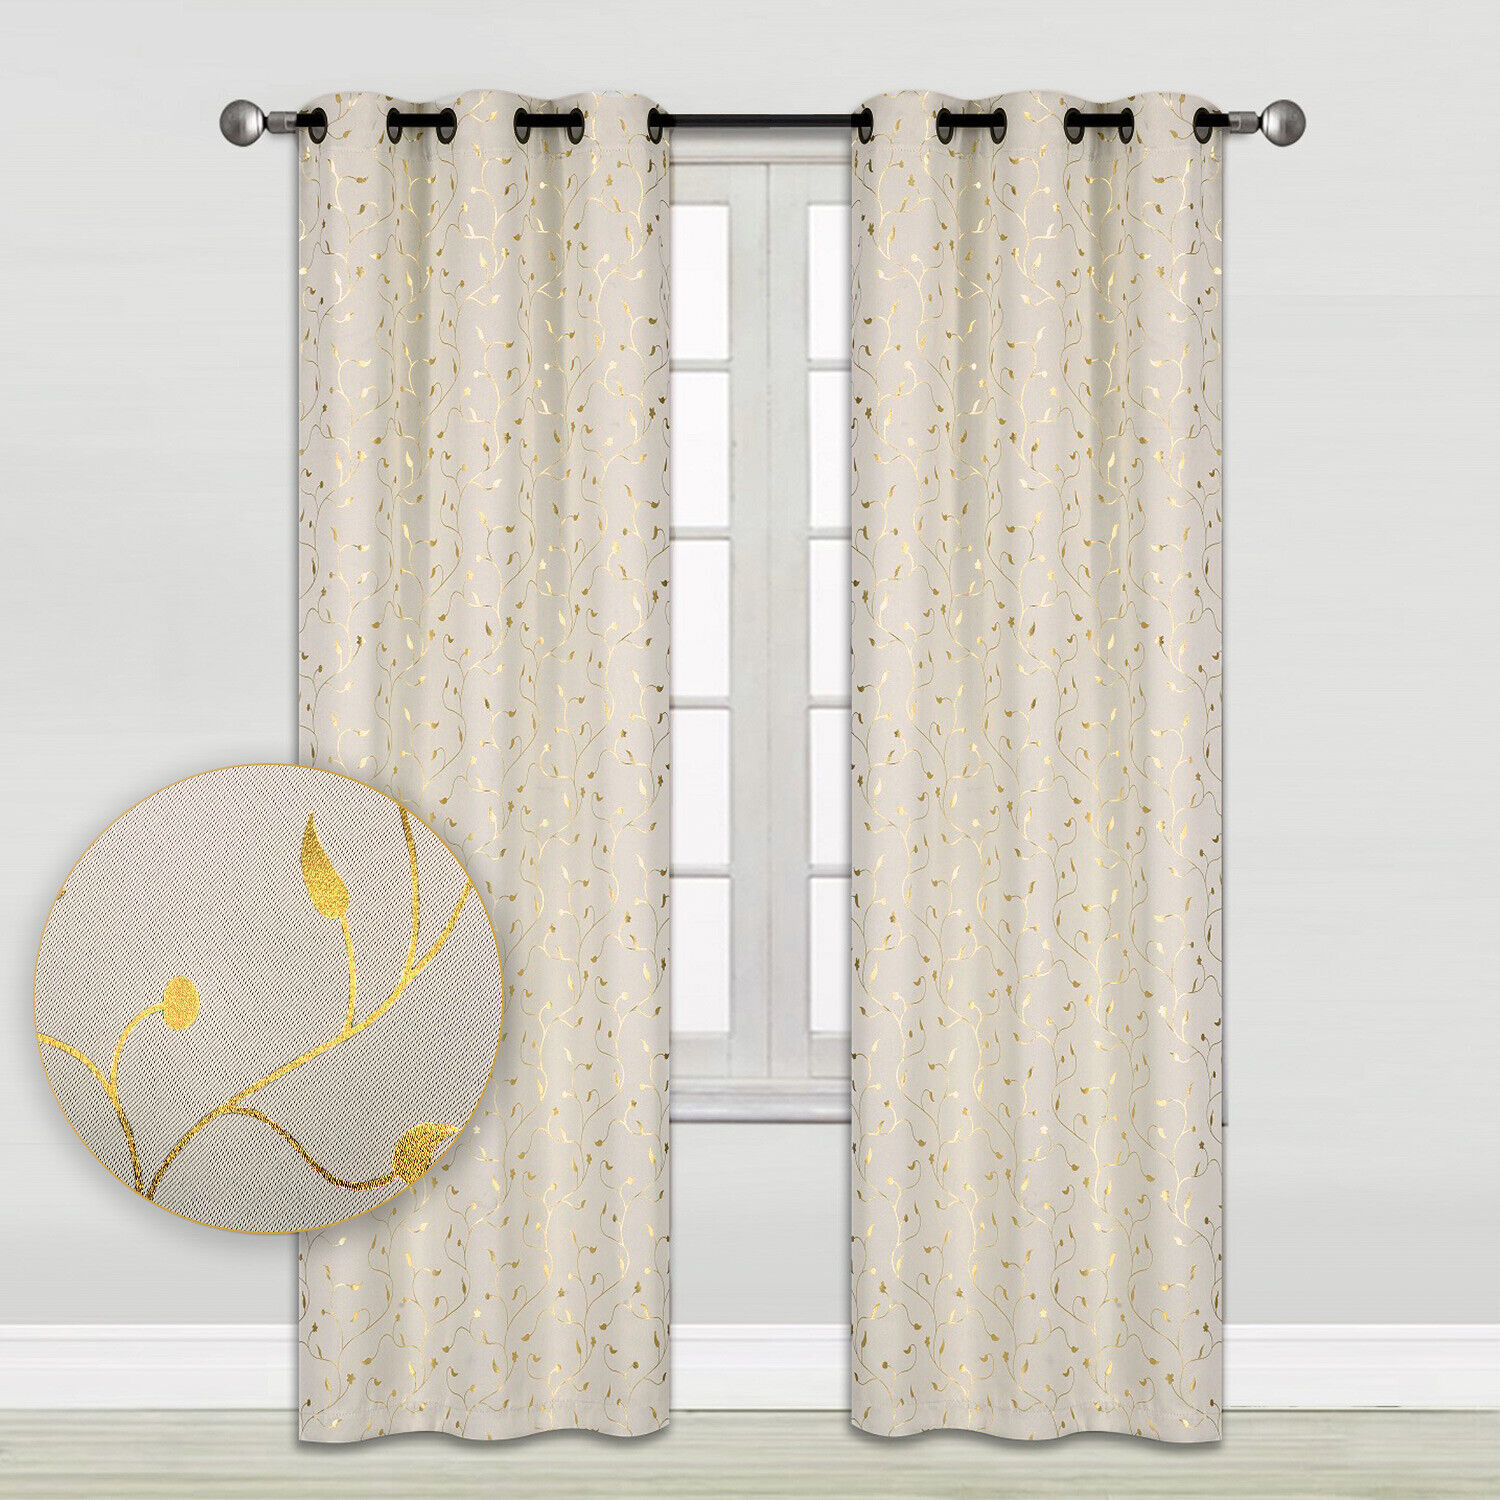 Gold Vine Embossed Blackout Window Curtains 2-Panel Pair 35″ x 84″ or 52″ x 84″ Curtains & Drapes